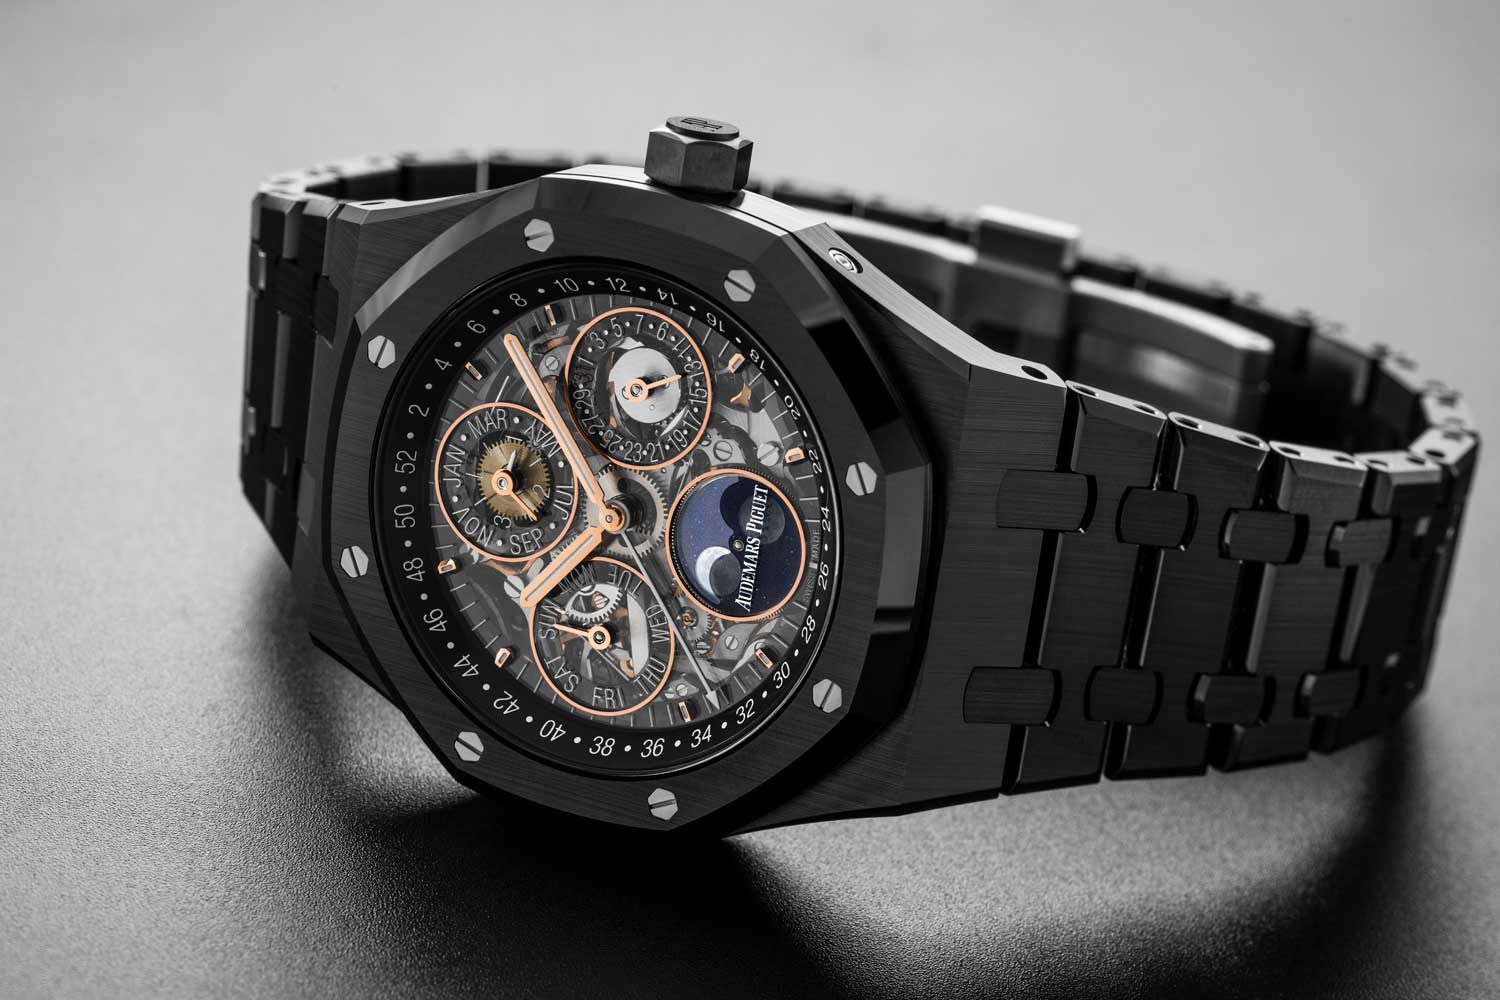 Audemars Piguet Royal Oak Perpetual Calendar Openworked Black Ceramic (Image © Revolution)